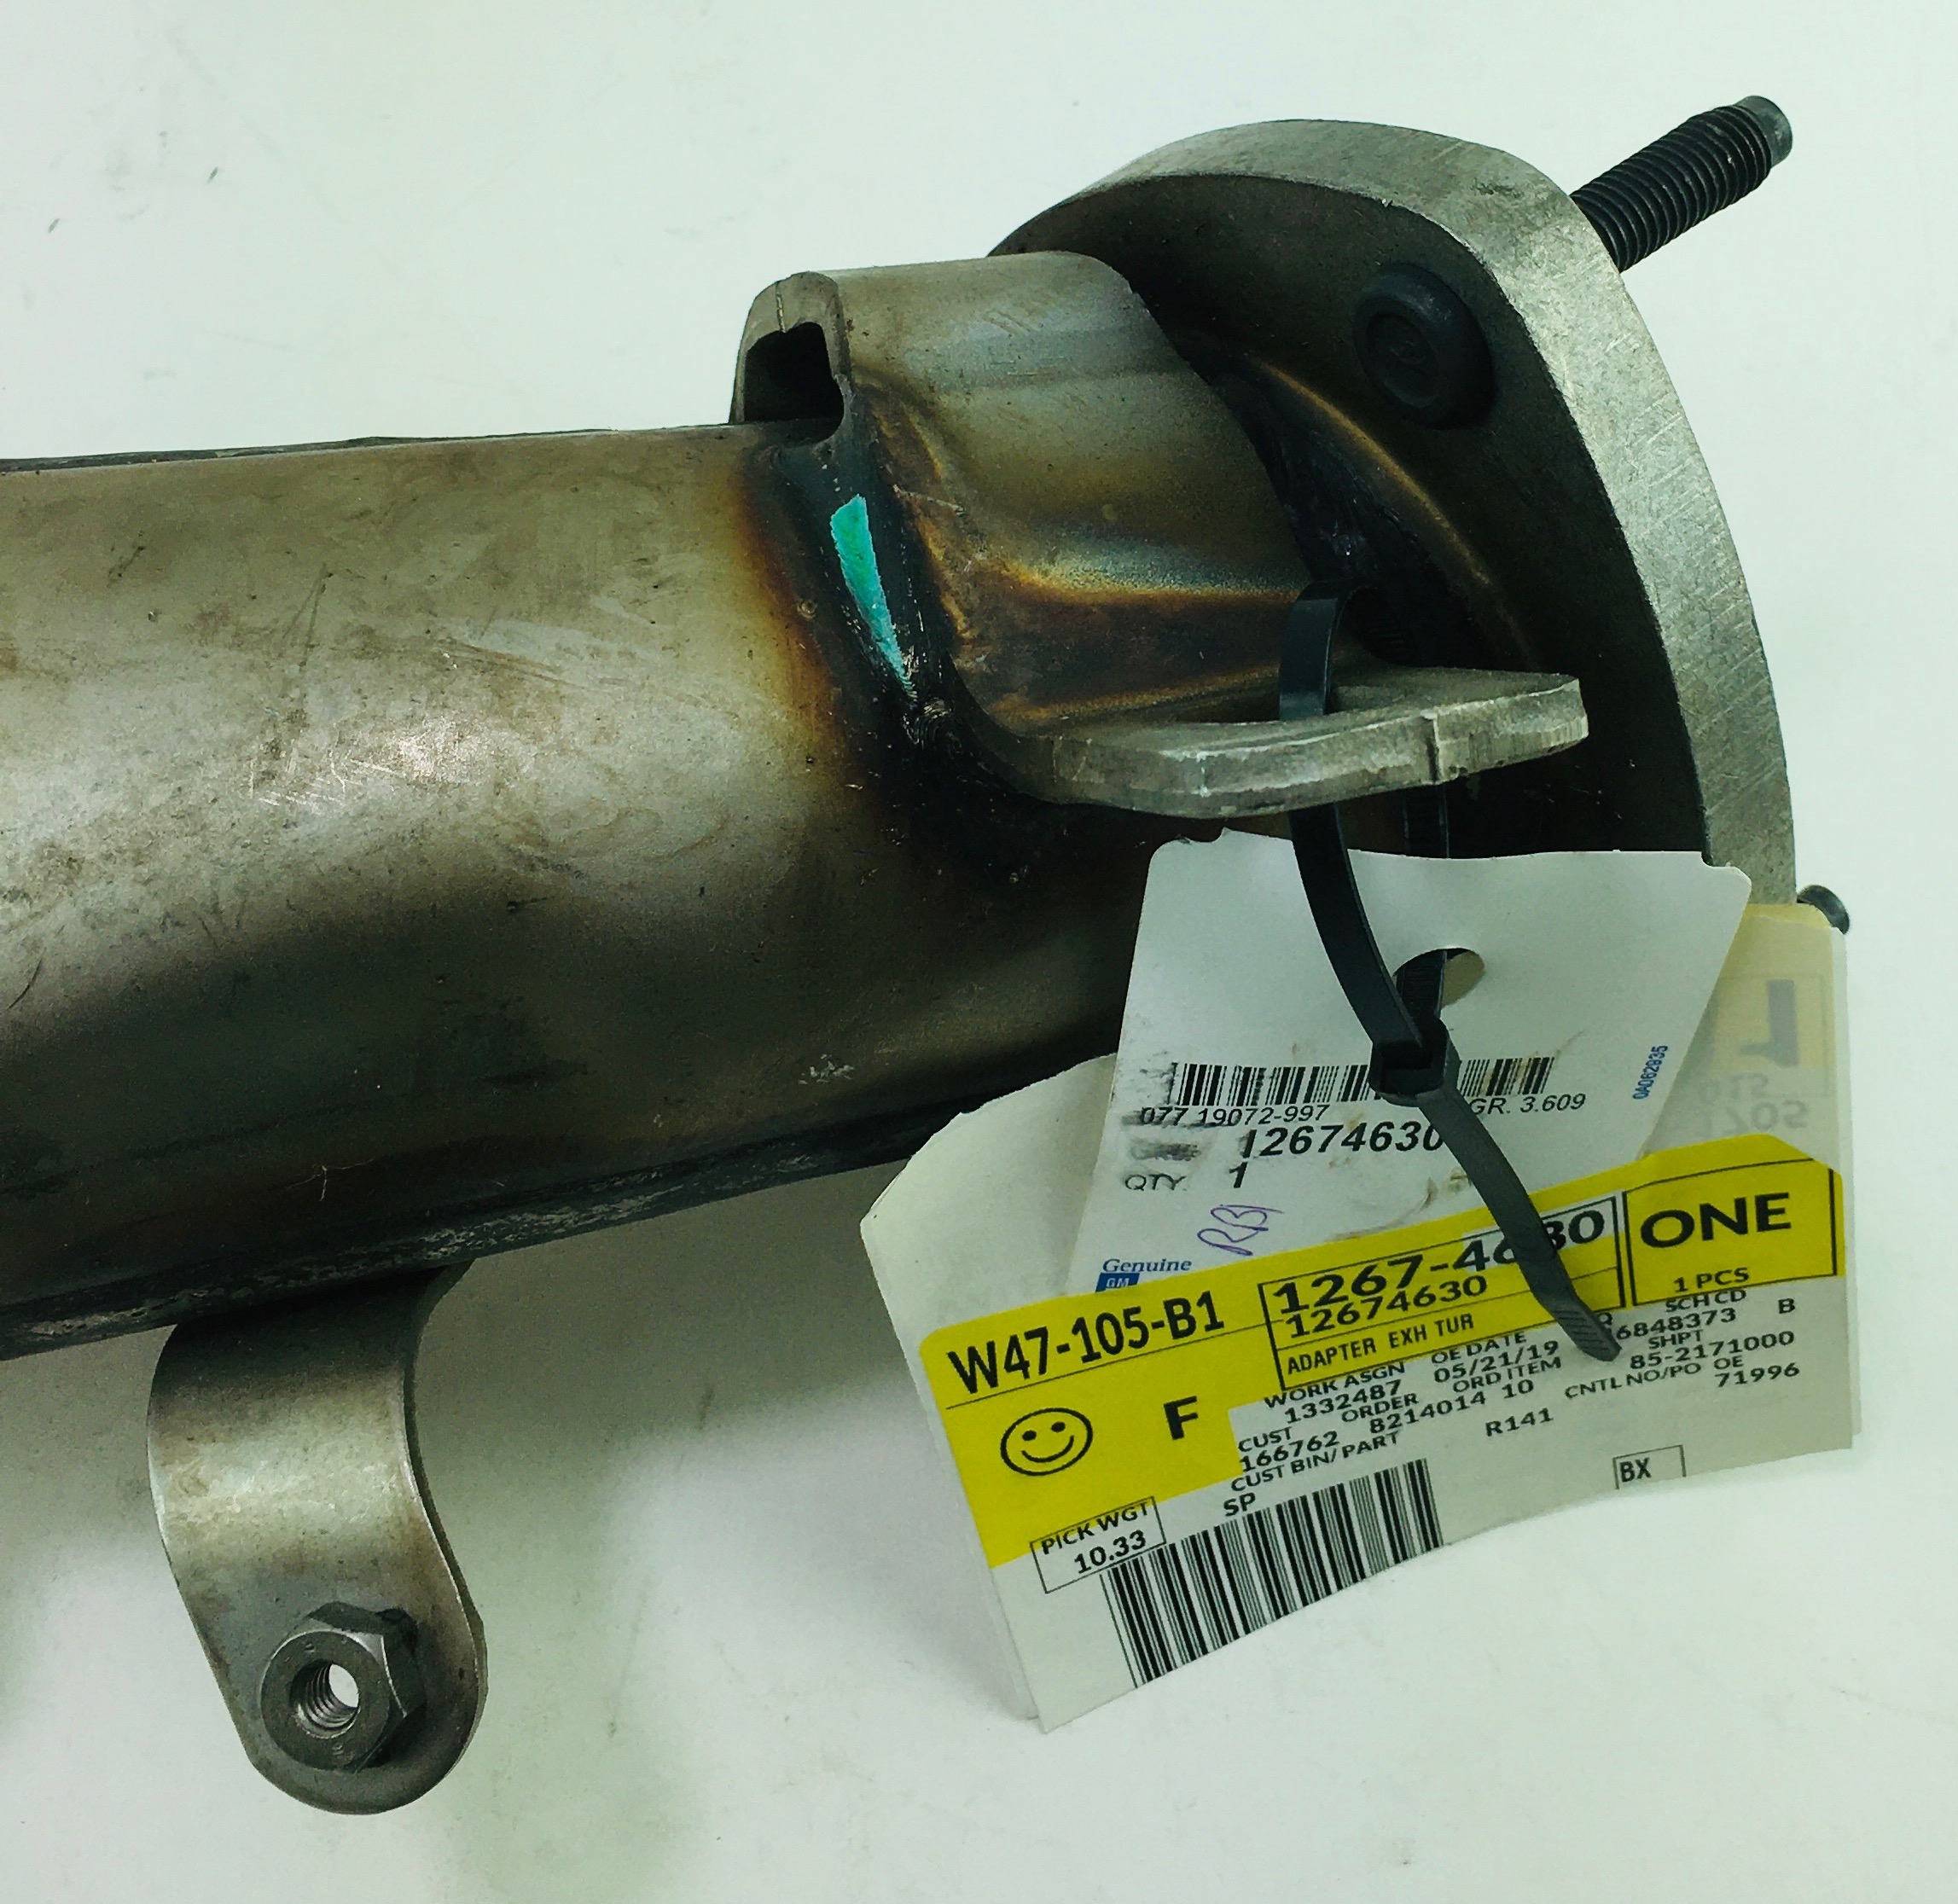 New OEM 12674630 15-16 GMC Chevy 6.6L Duramax Exhaust Turbo Outlet Pipe Adapter - image 4